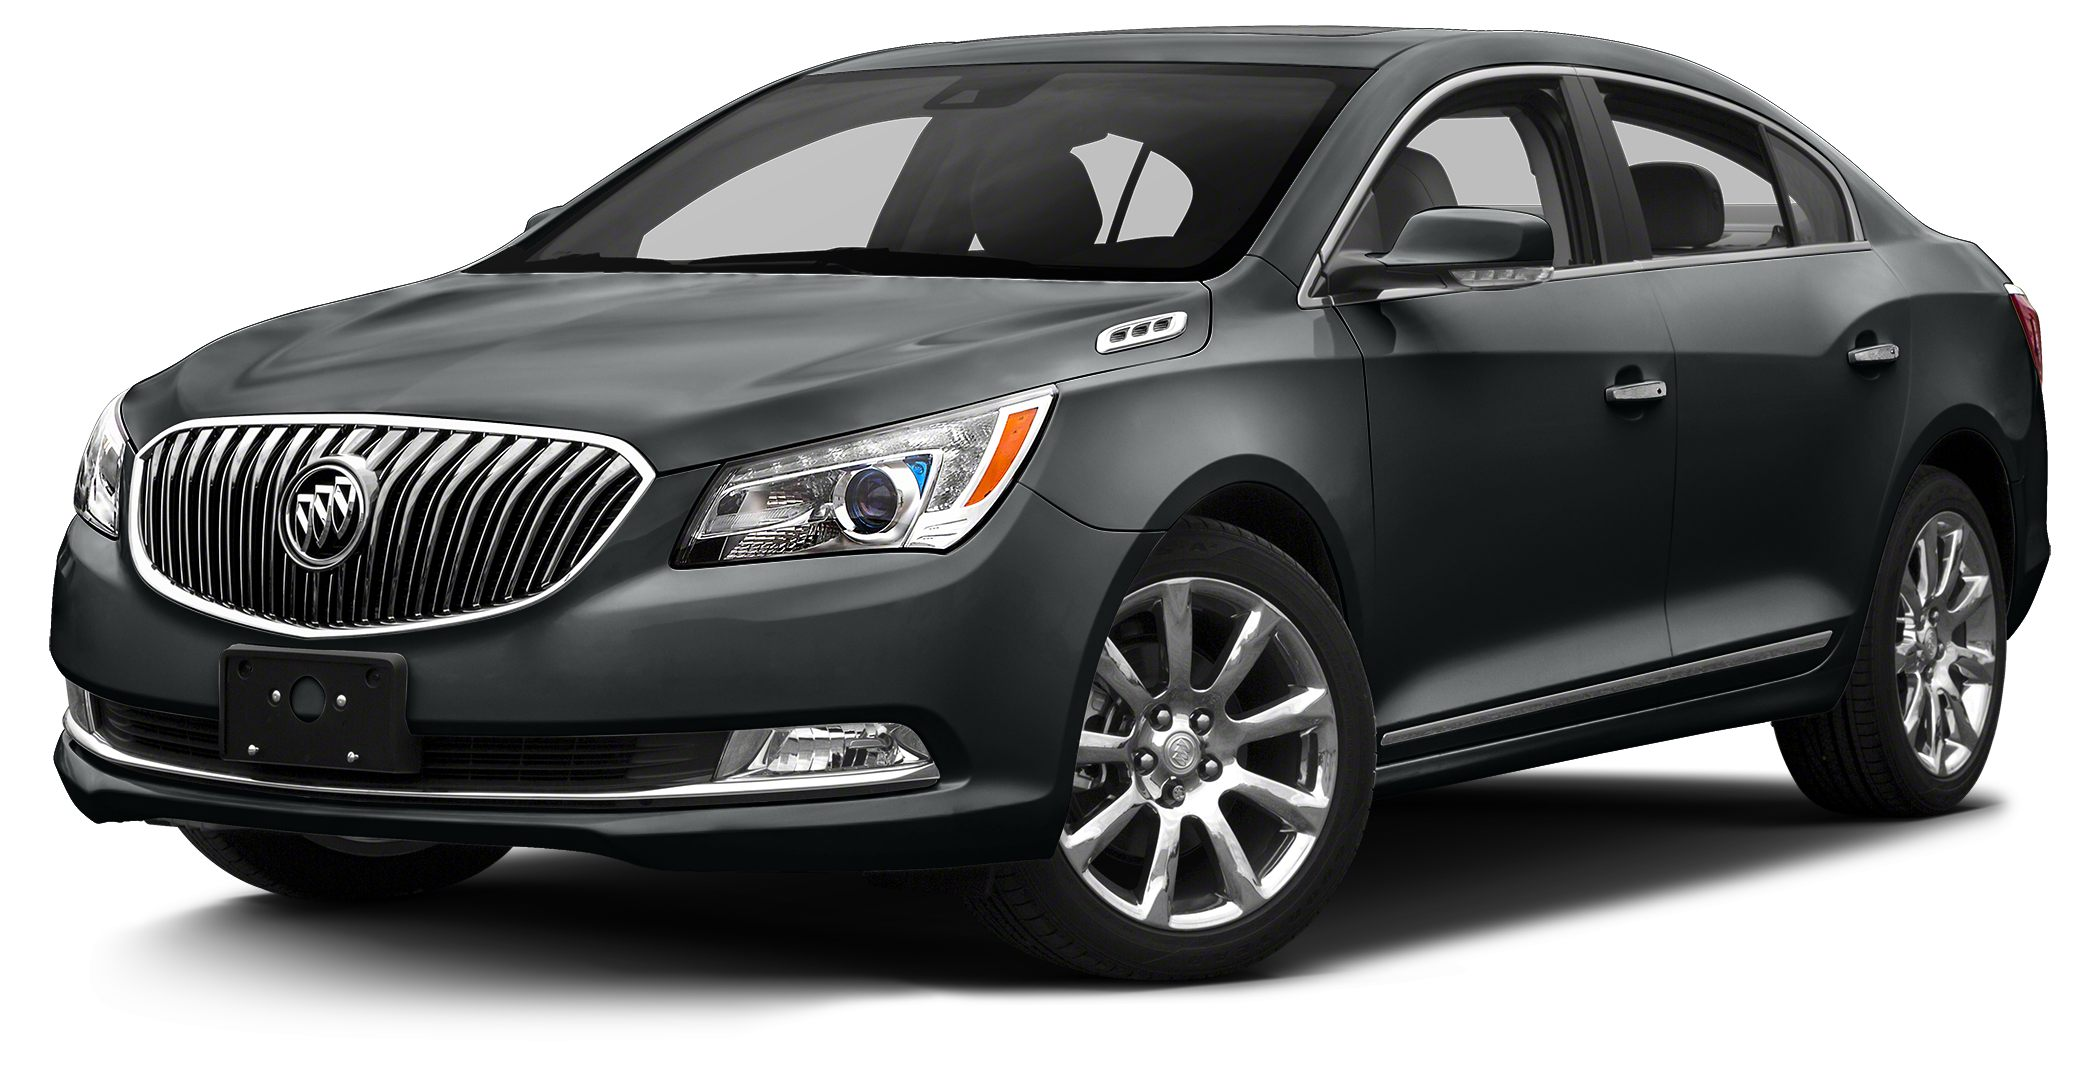 2014 Buick LaCrosse Leather Group GREAT MILES 31775 Leather trim EPA 36 MPG Hwy25 MPG City He